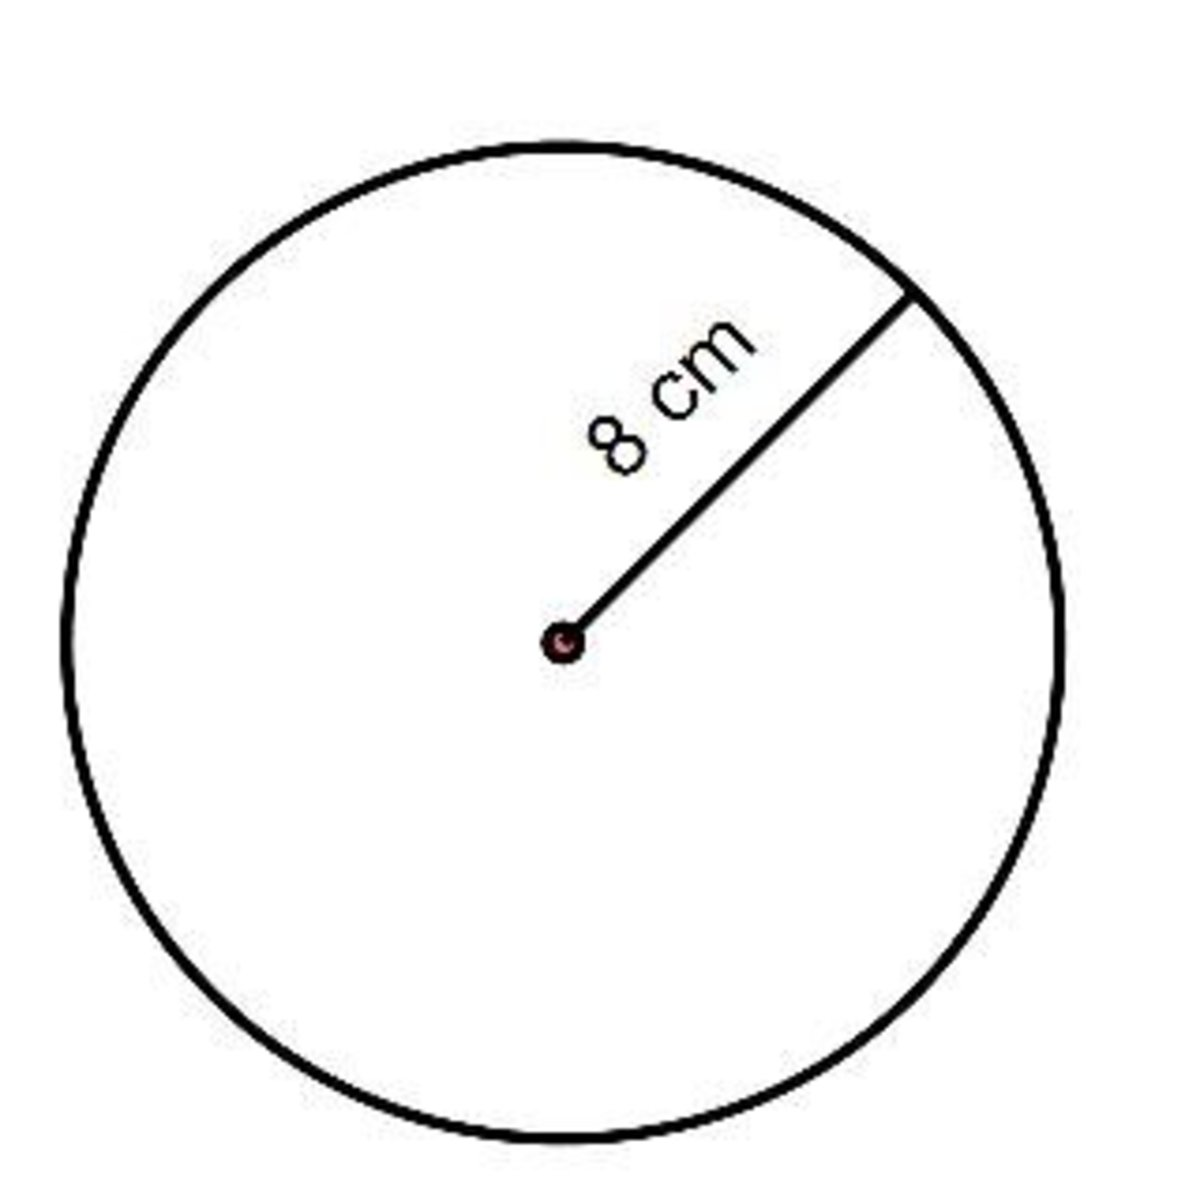 how to find the area of a semicircle calculator